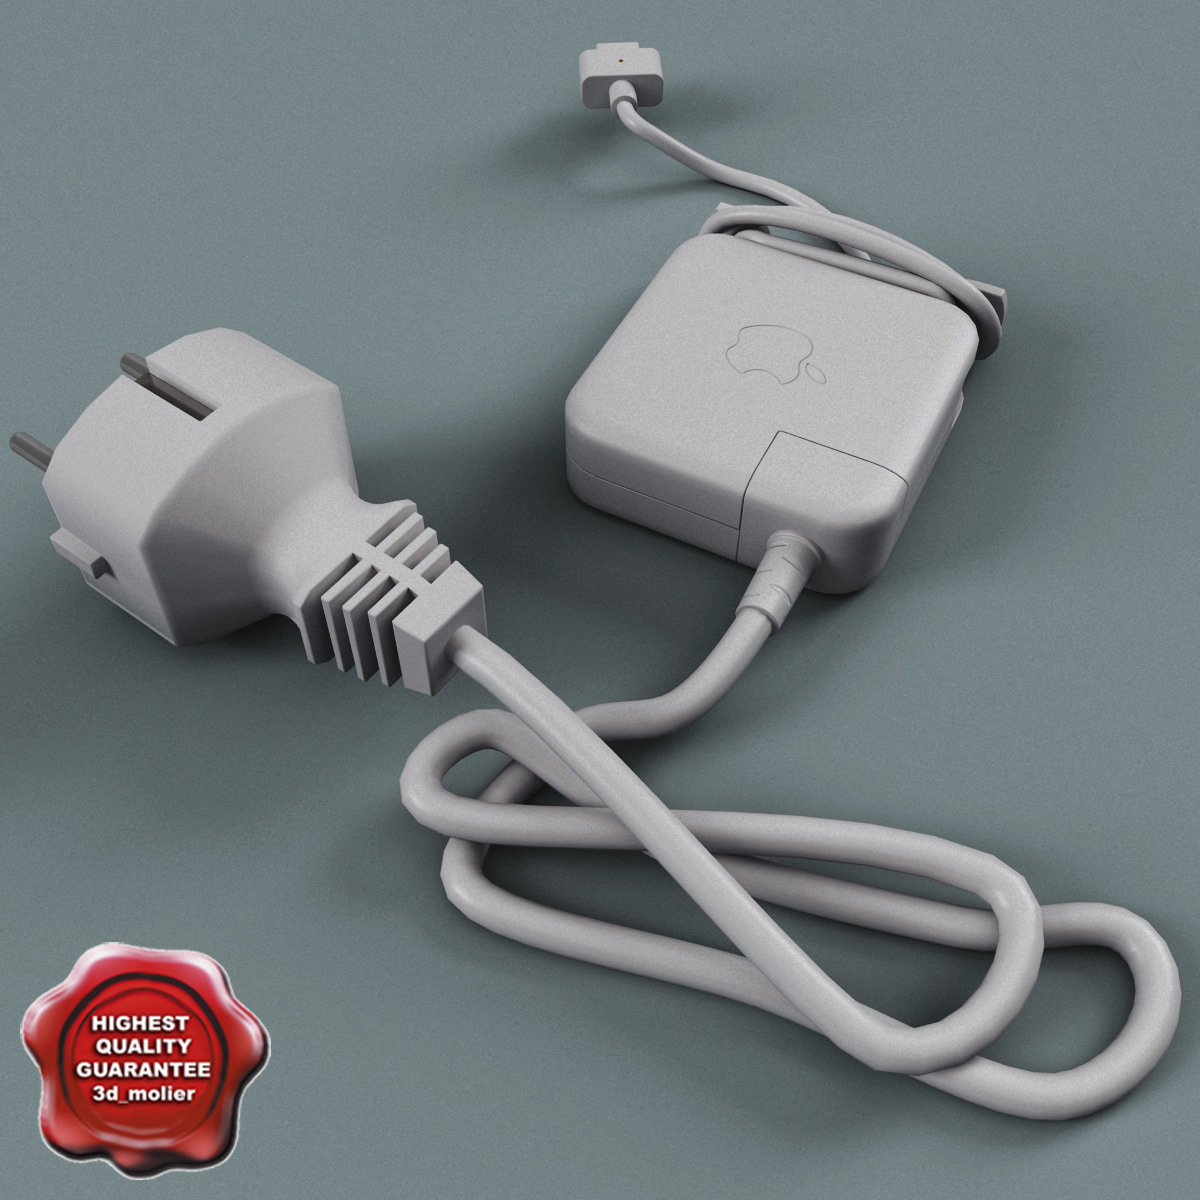 Apple_Adapter_Charger_00.jpg